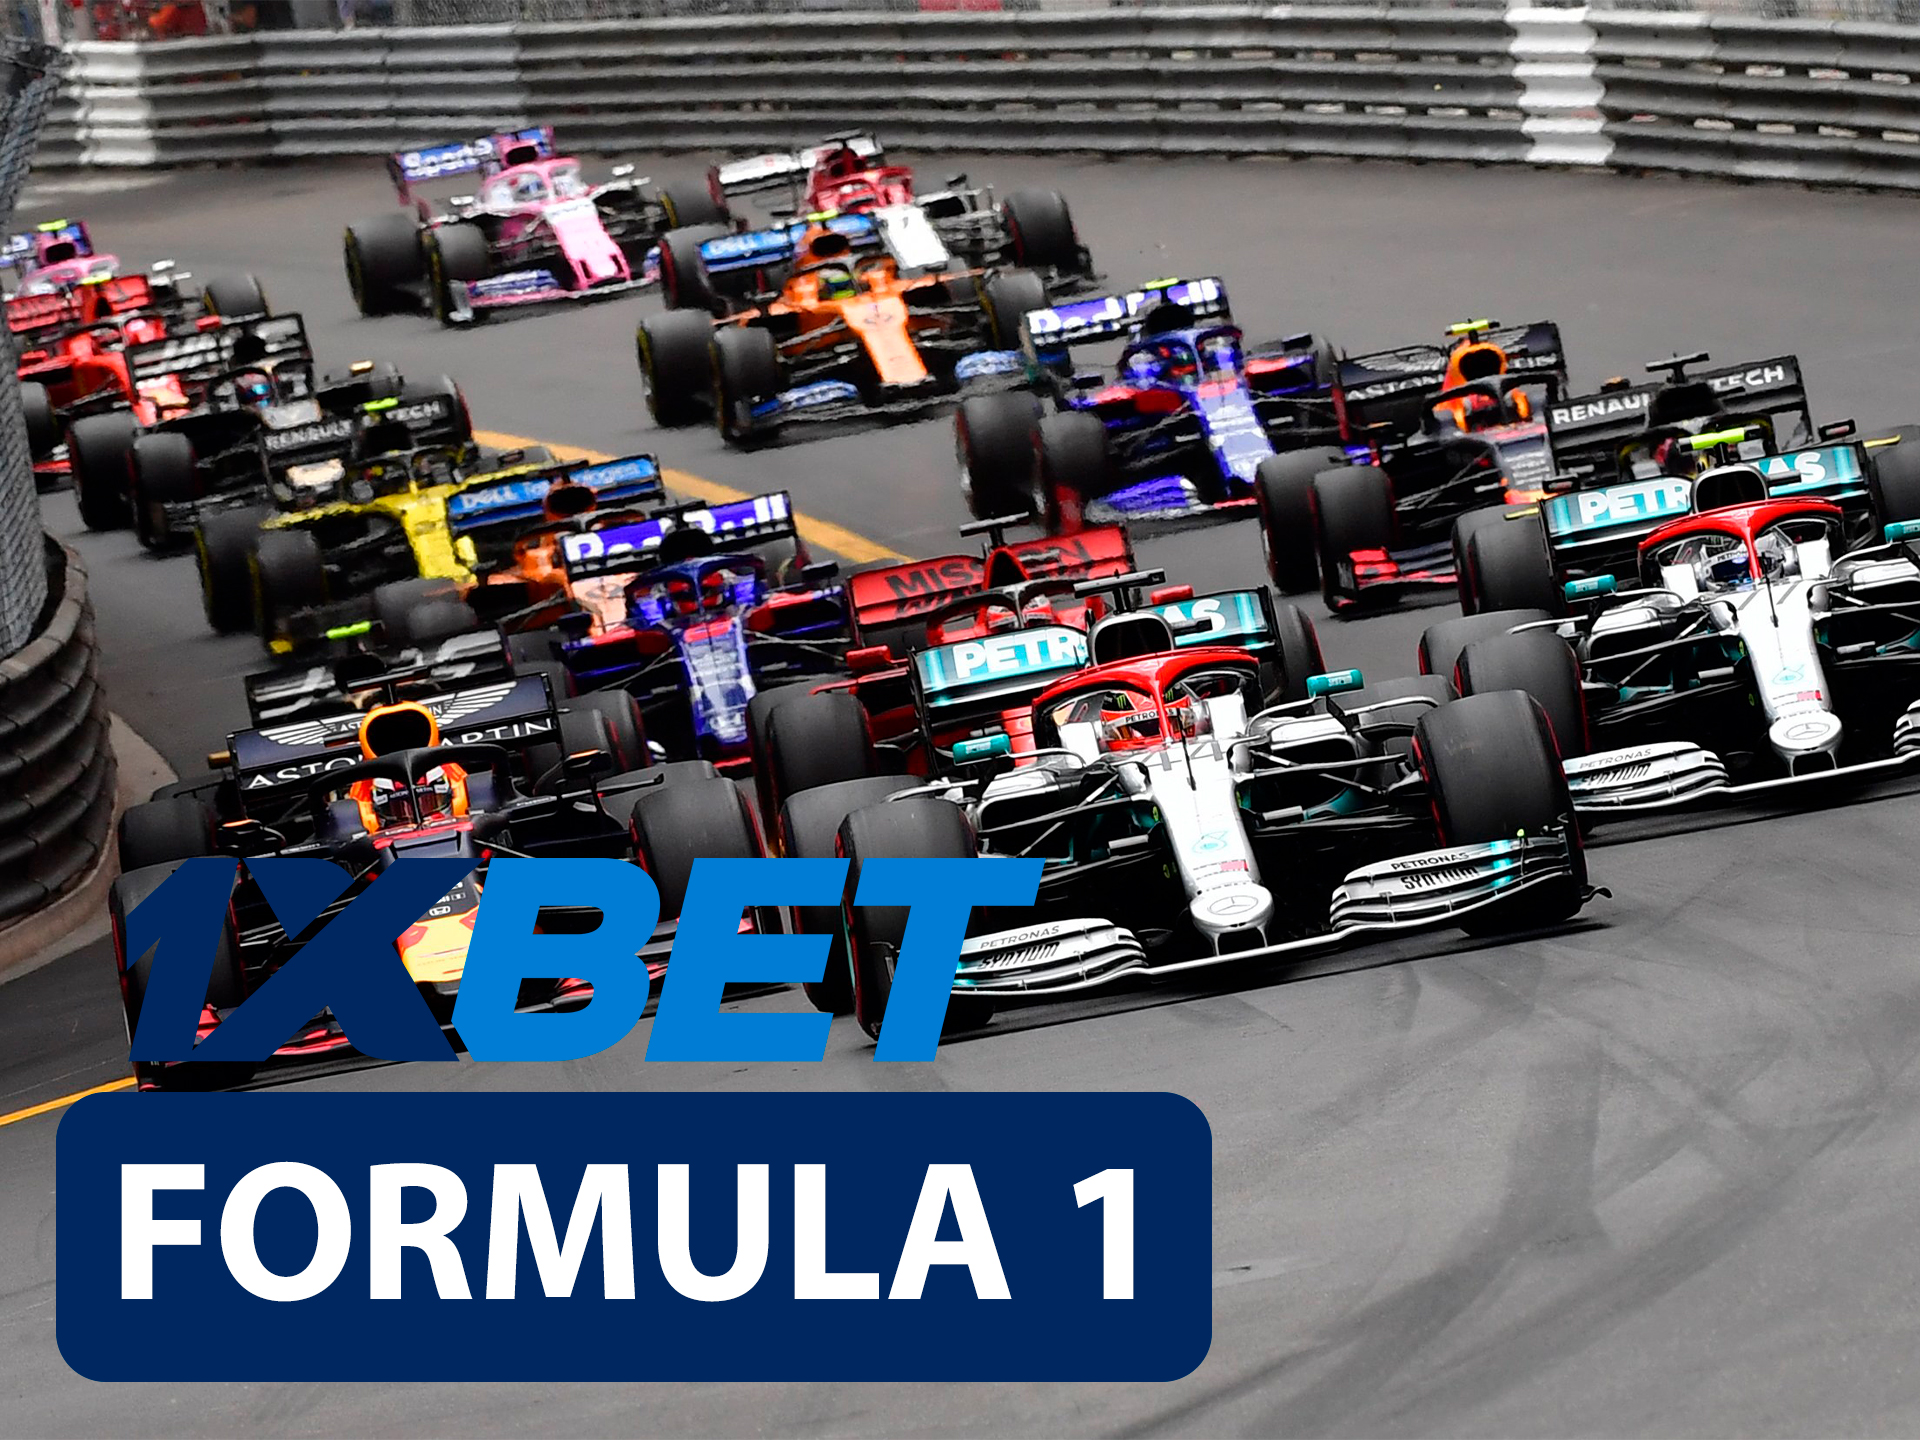 Start betting on Formula 1 with 1xBet